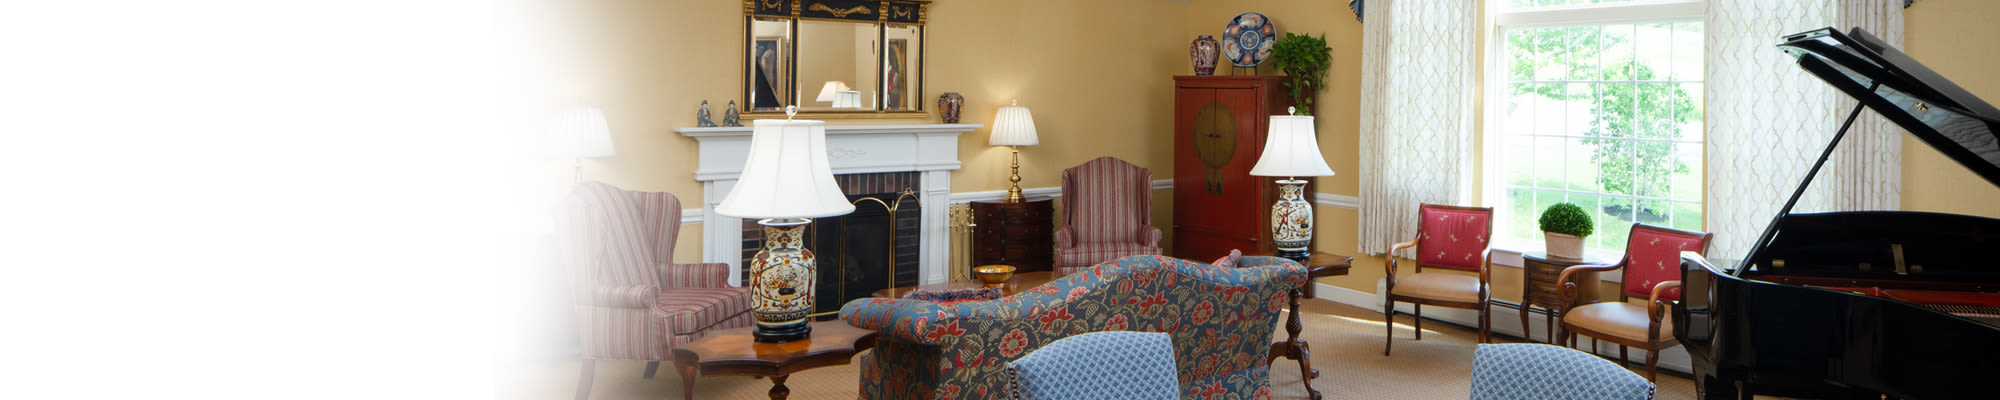 Respite care offered at Woodstock Terrace in Woodstock, Vermont